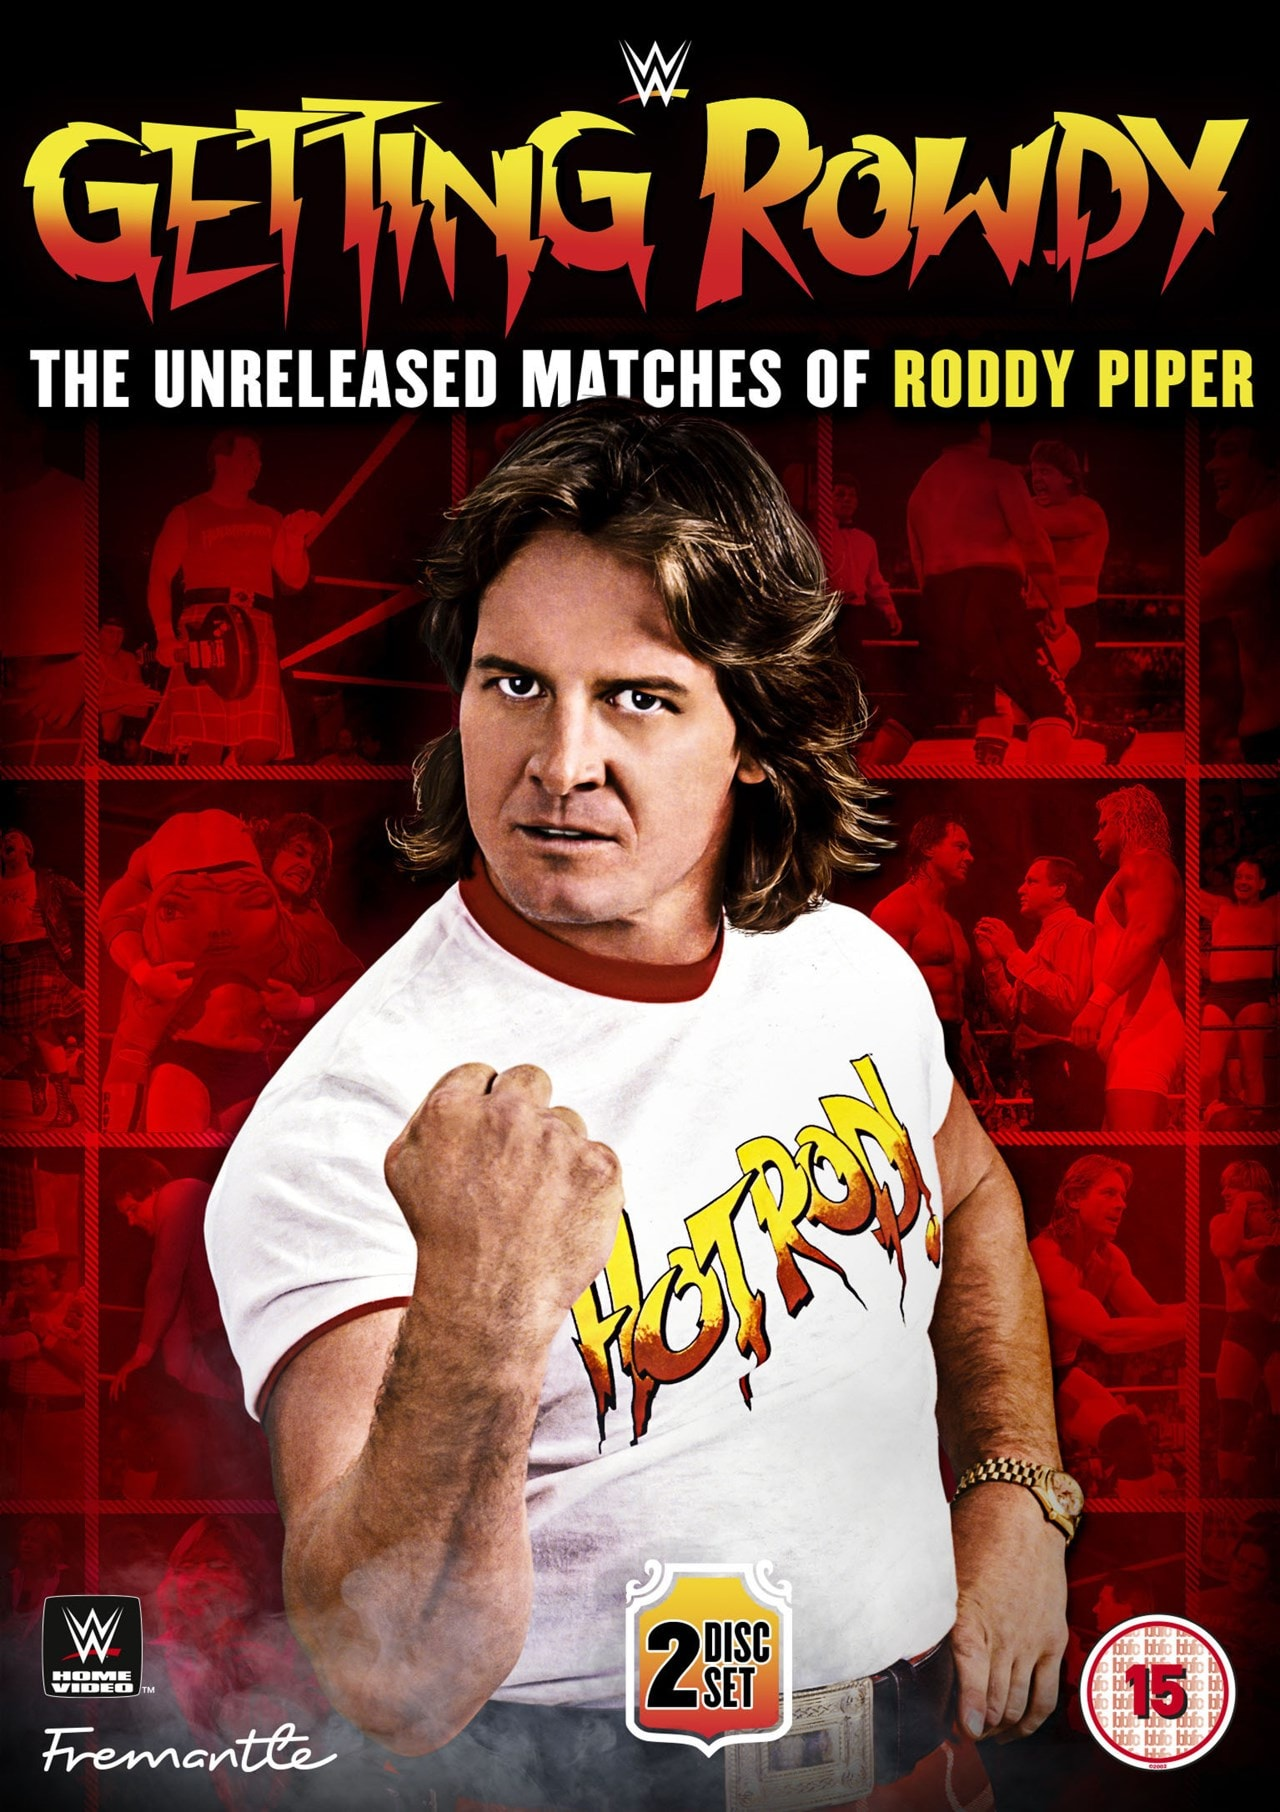 WWE: Getting Rowdy - The Unreleased Matches of Roddy Piper - 1